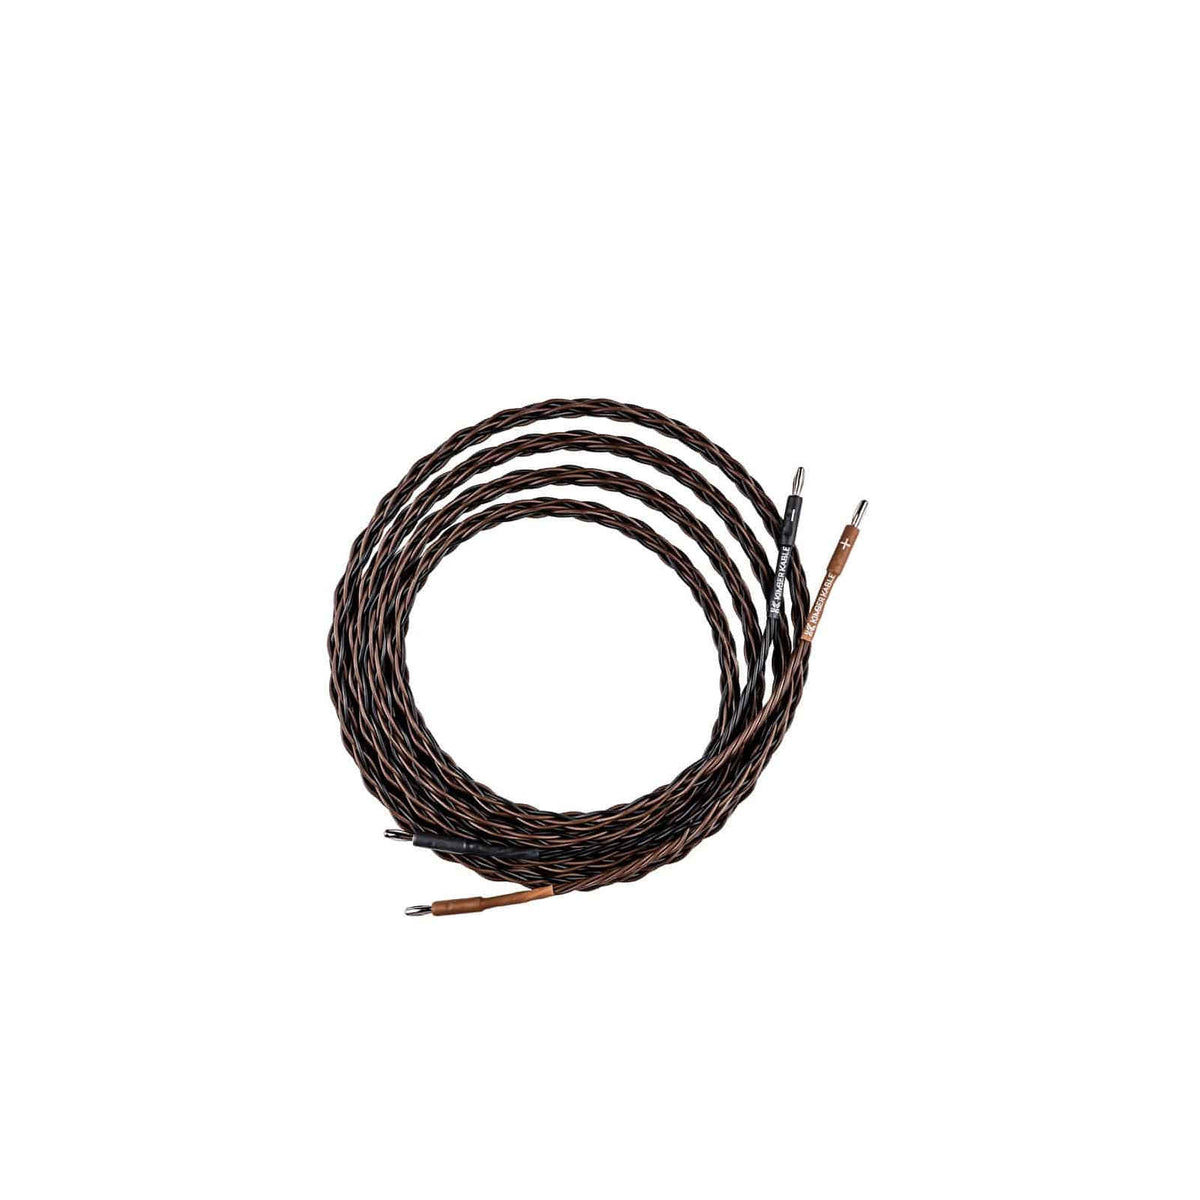 Buy Kimber Kable 4PR Speaker Cable Online at Best Price in